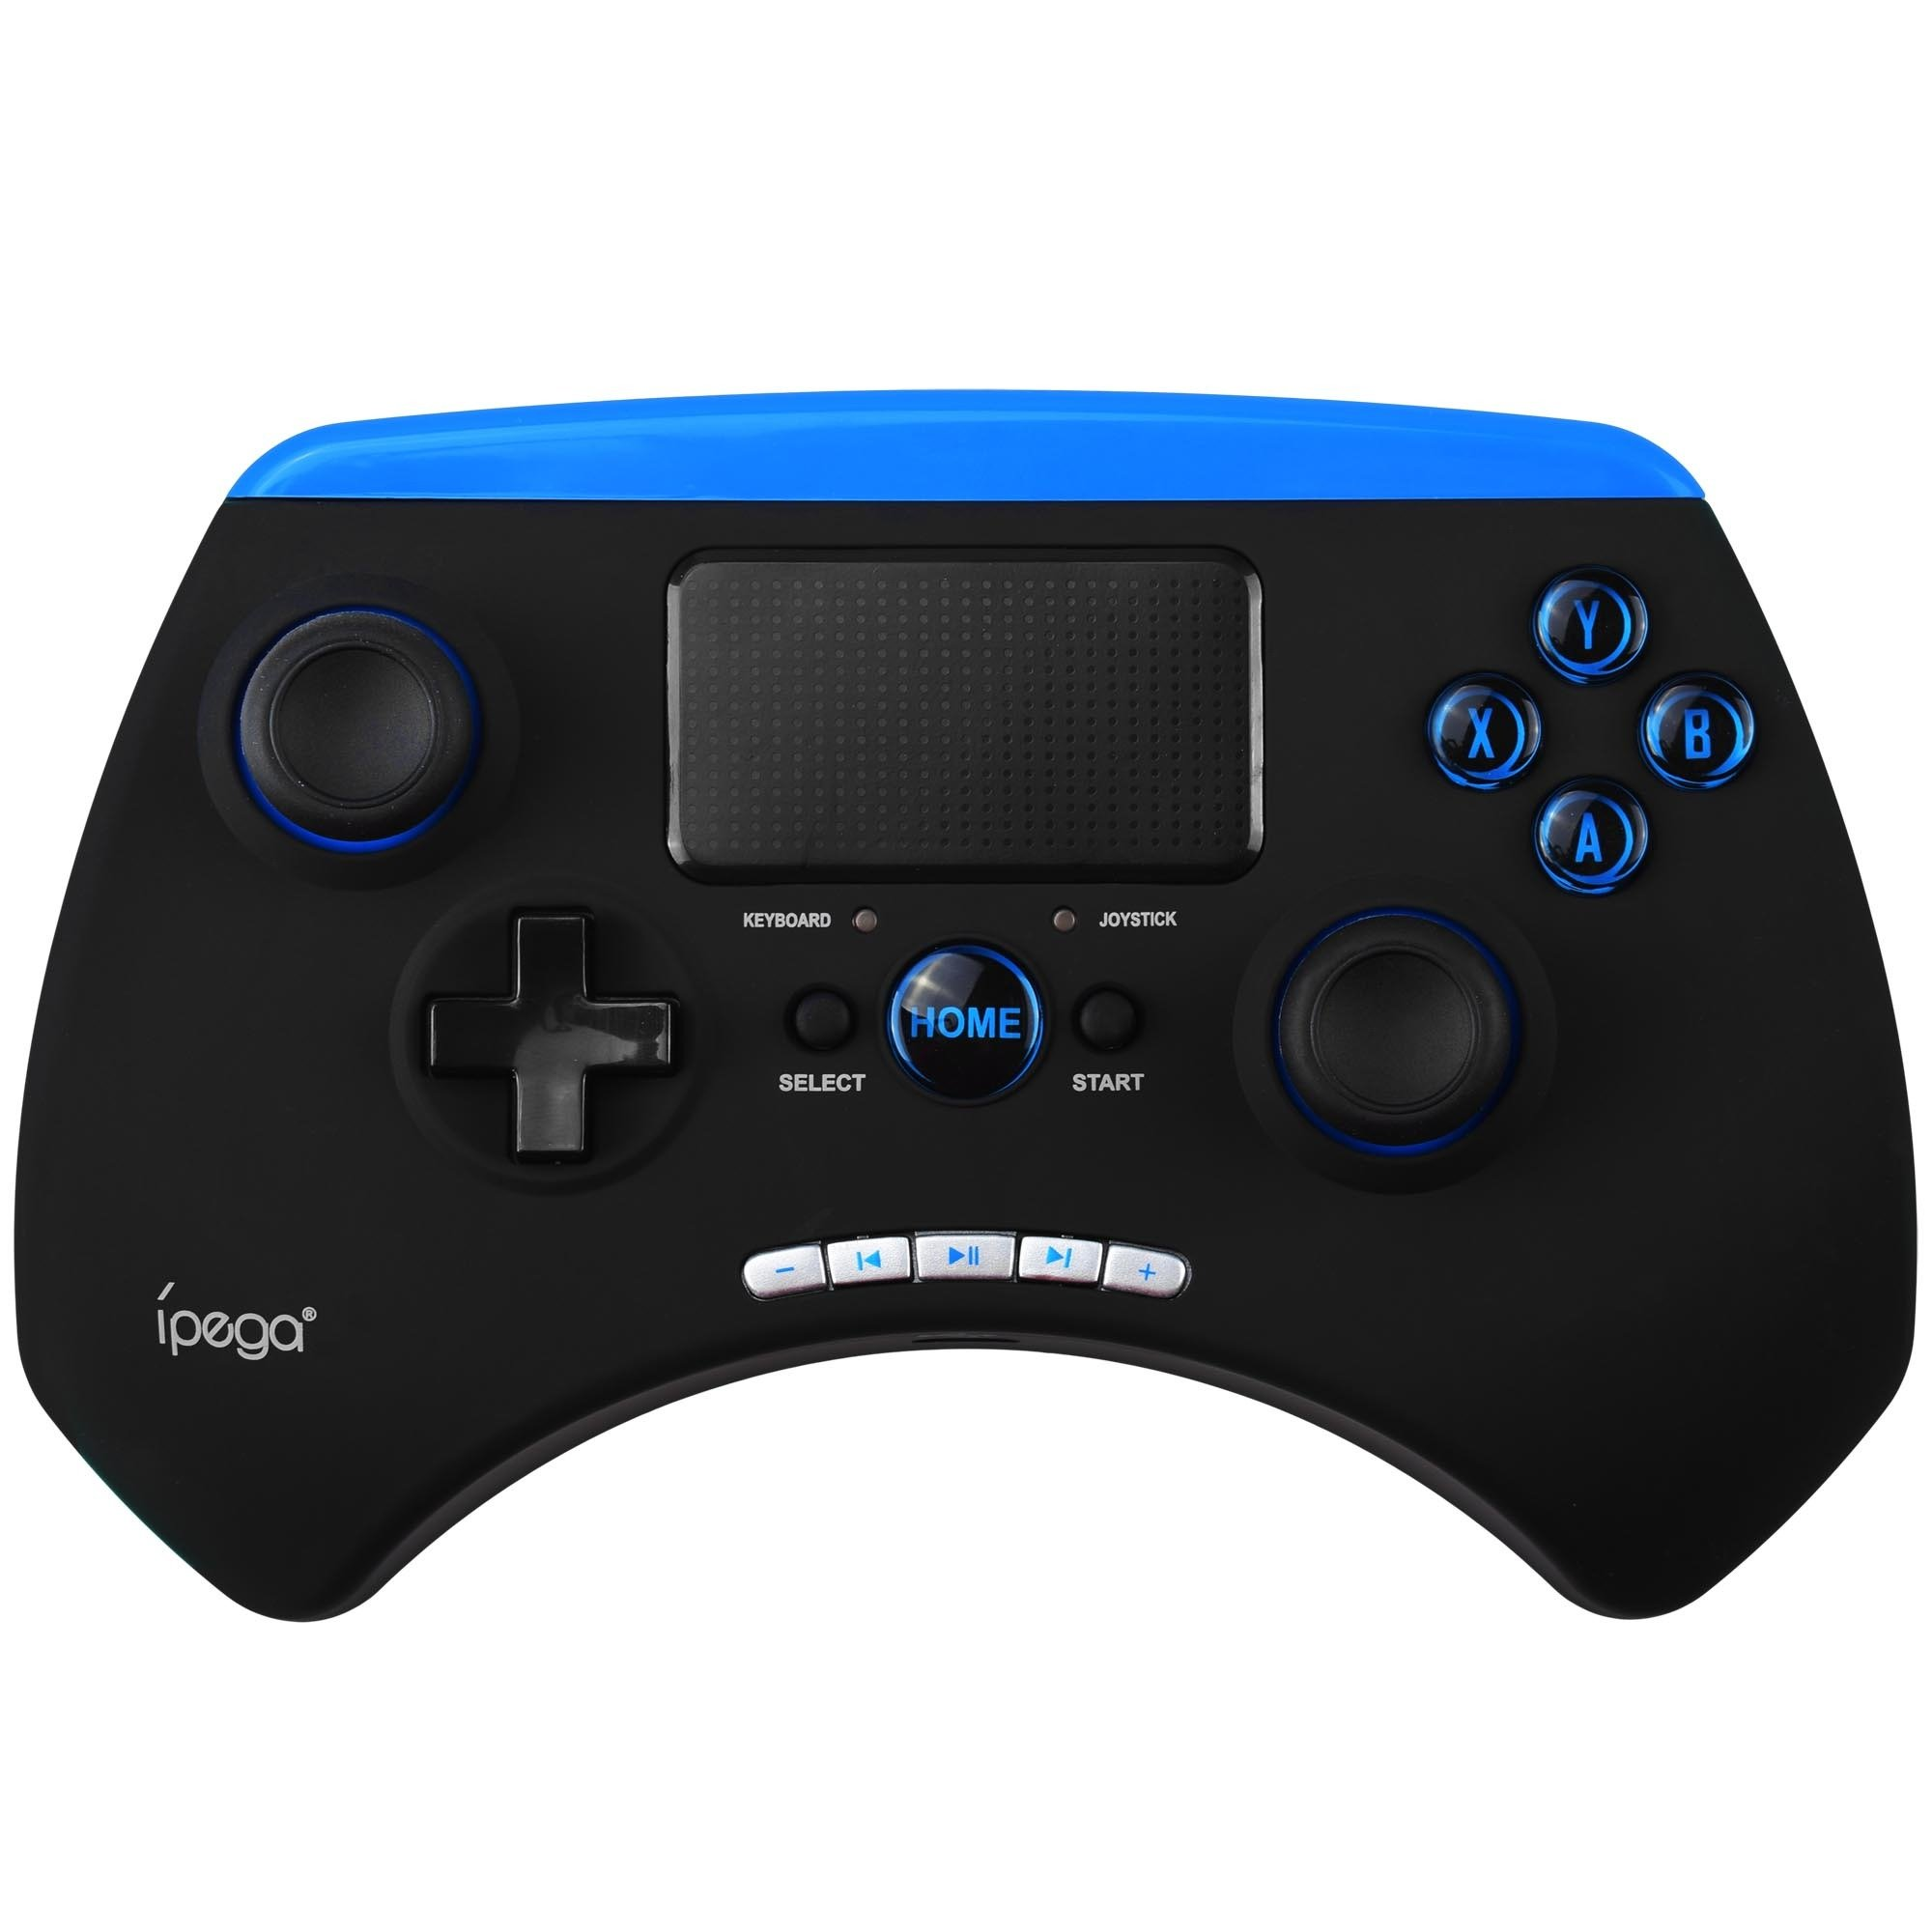 iPEGA PG-9028 Wireless Bluetooth Game Controller Gamepad With Touch Pad for Samsung Galaxy Note HTC LG Android Tablet PC